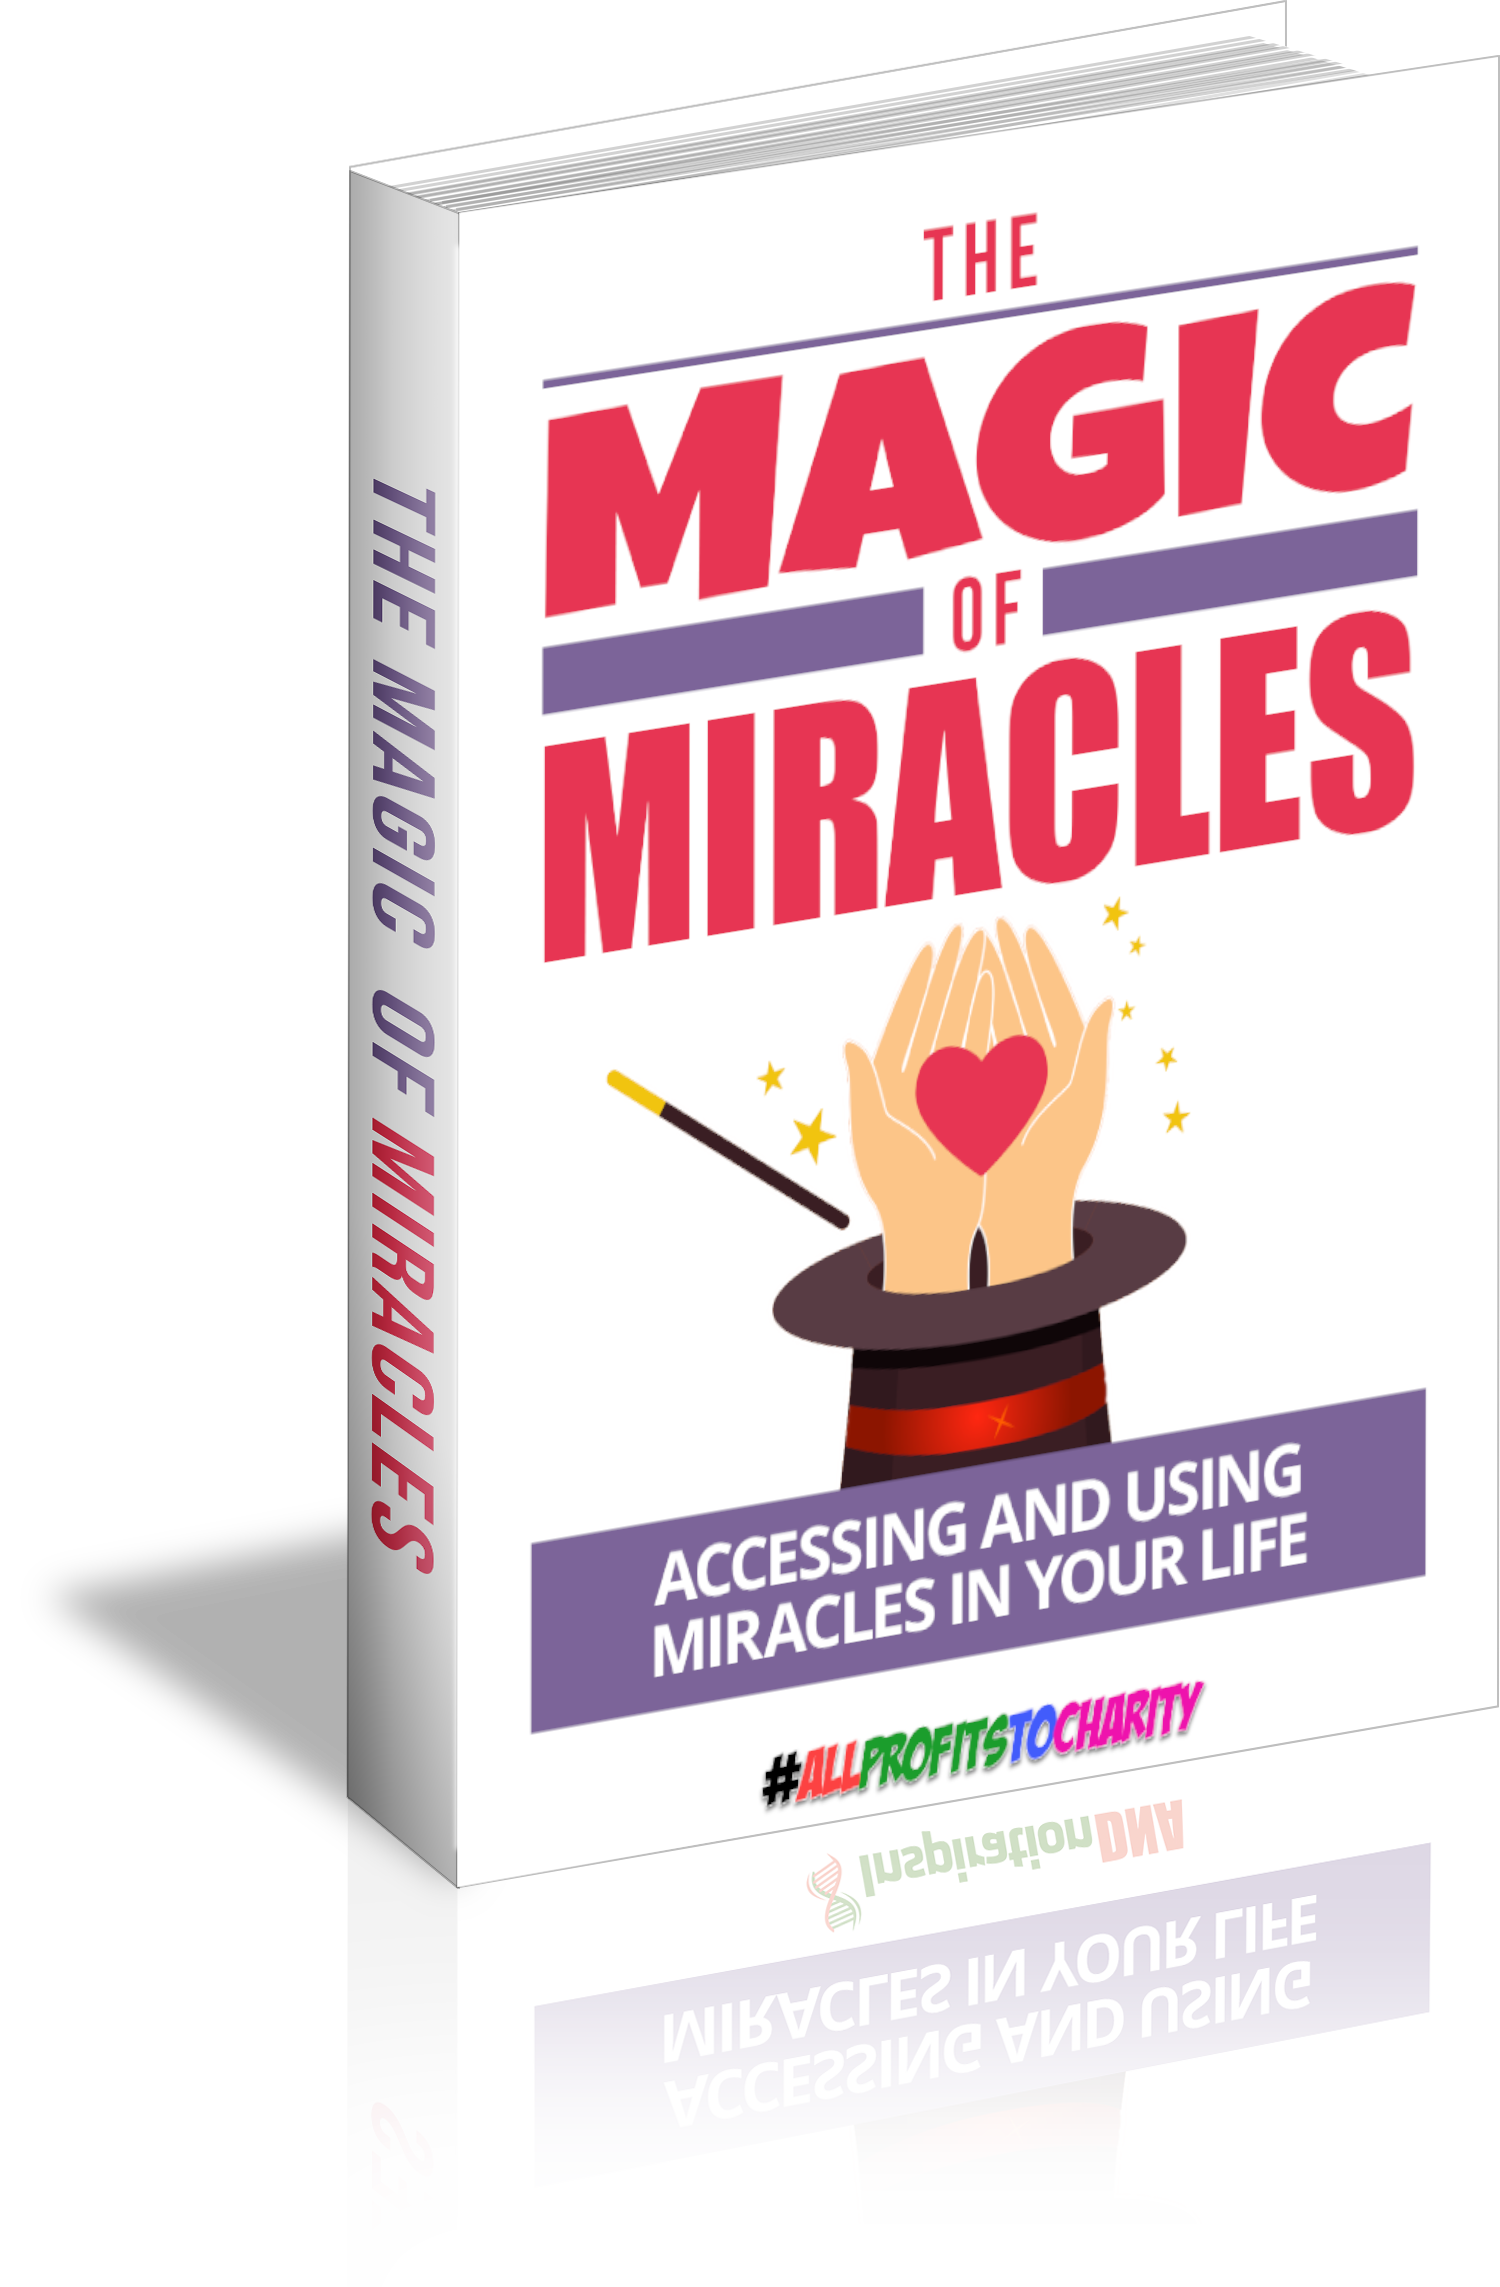 The Magic Of Miracles cover